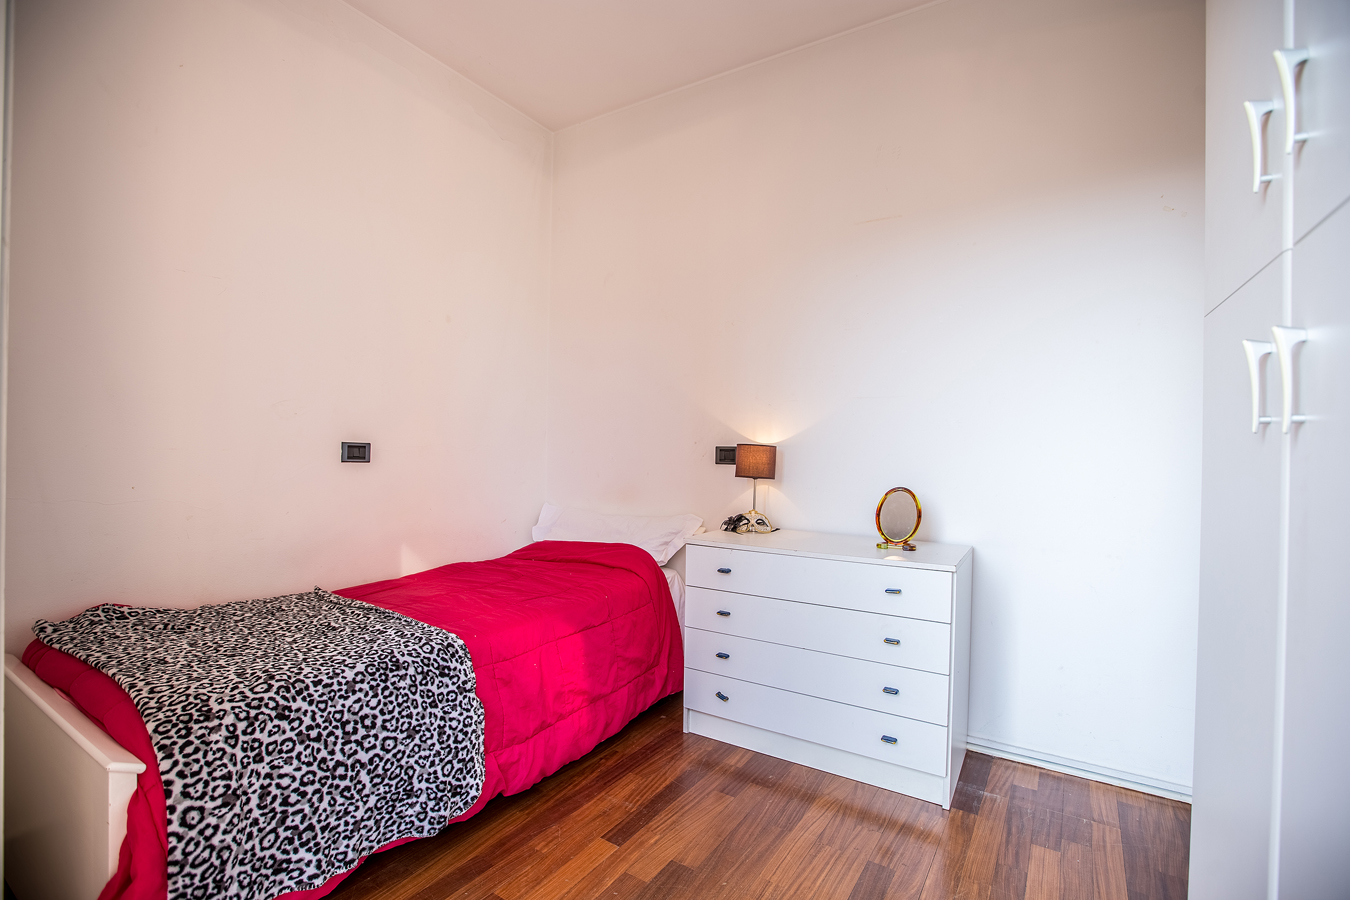 Student Accomodation for rent in single room in Via Stadera, 12, in Milano, Italy